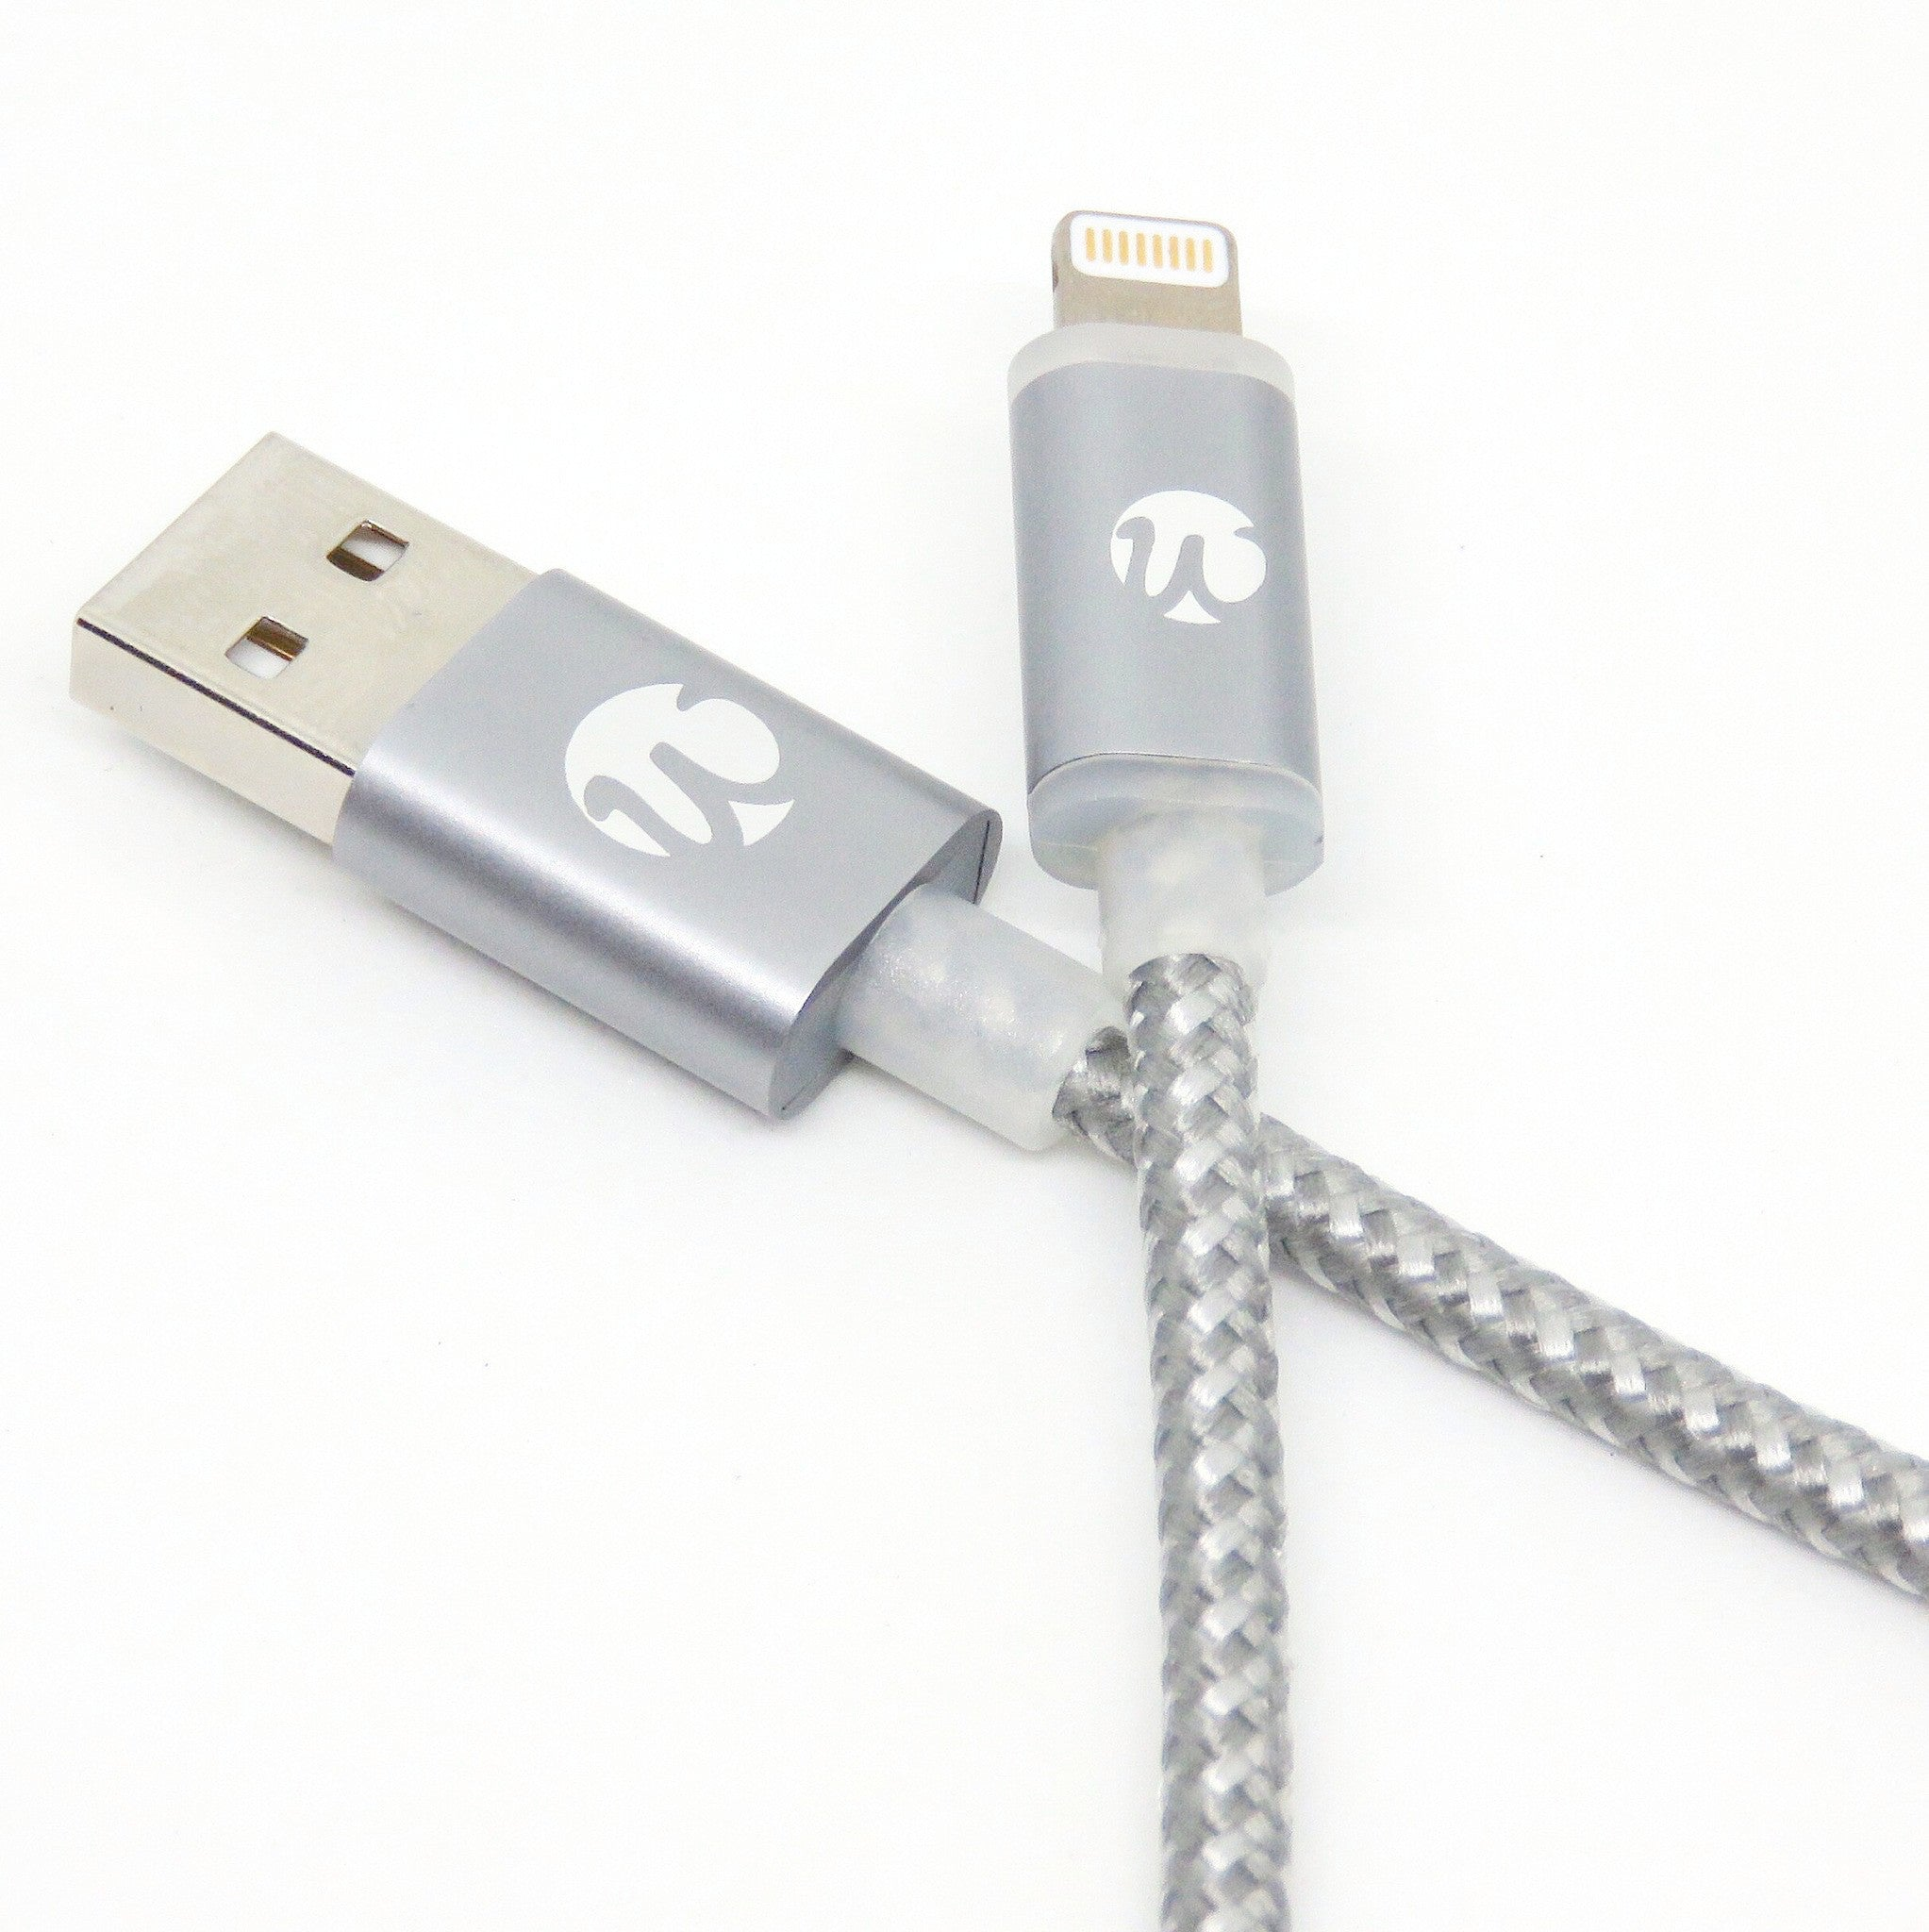 Quickdraw v3 LED MFi Lightning Cable